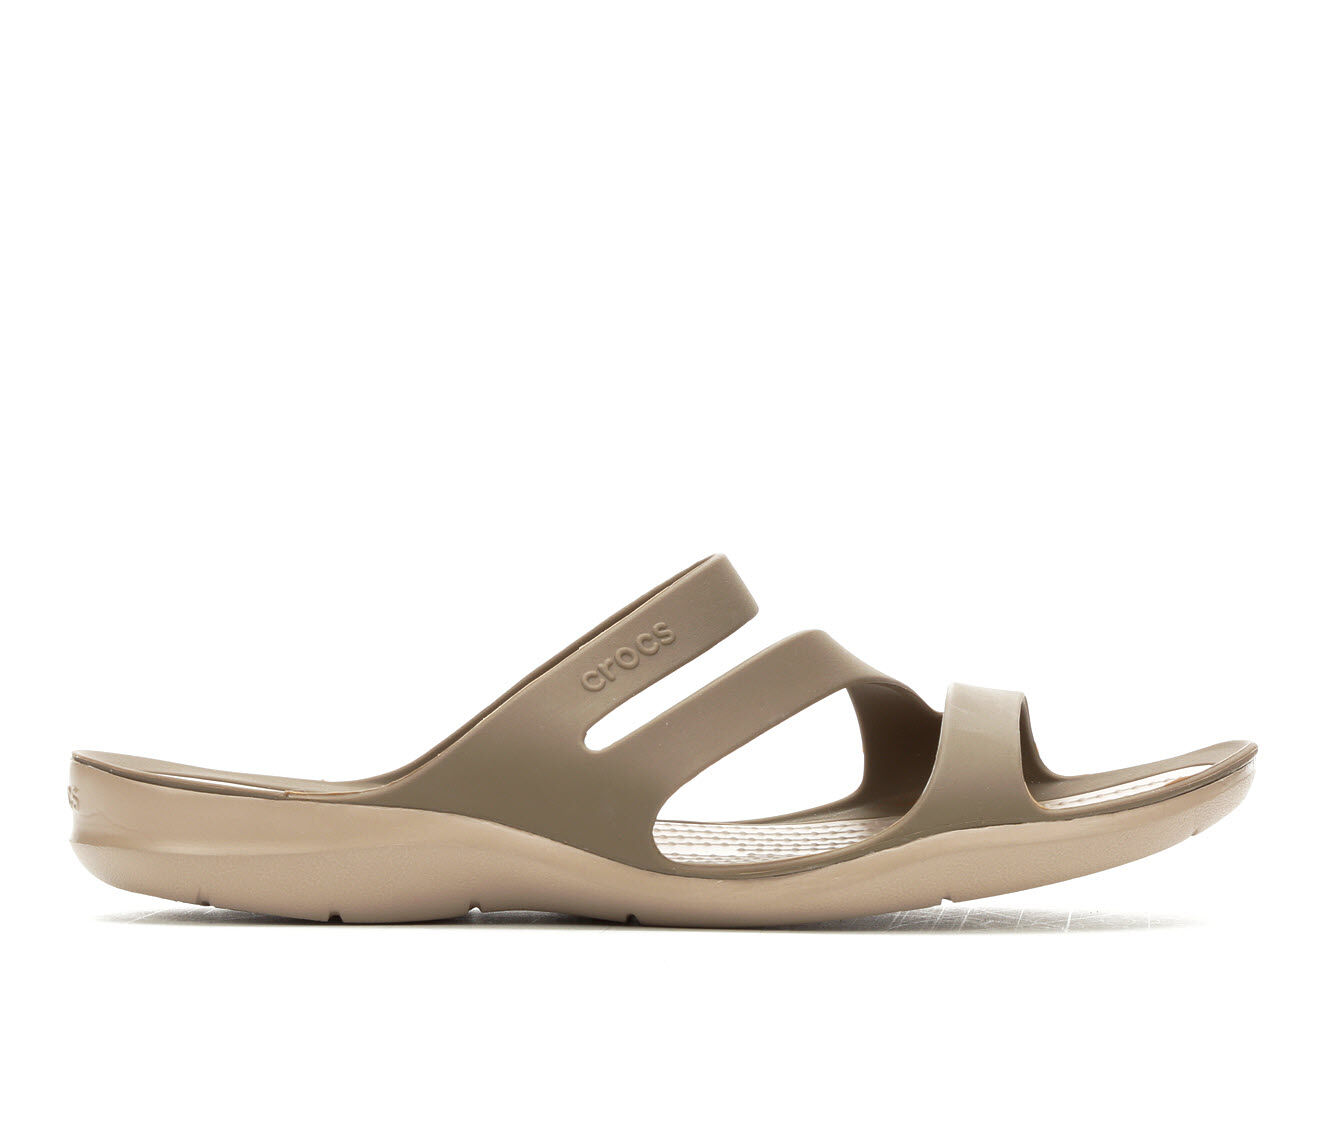 Recently Launched Women's Crocs Swiftwater Strappy Sandals Walnut